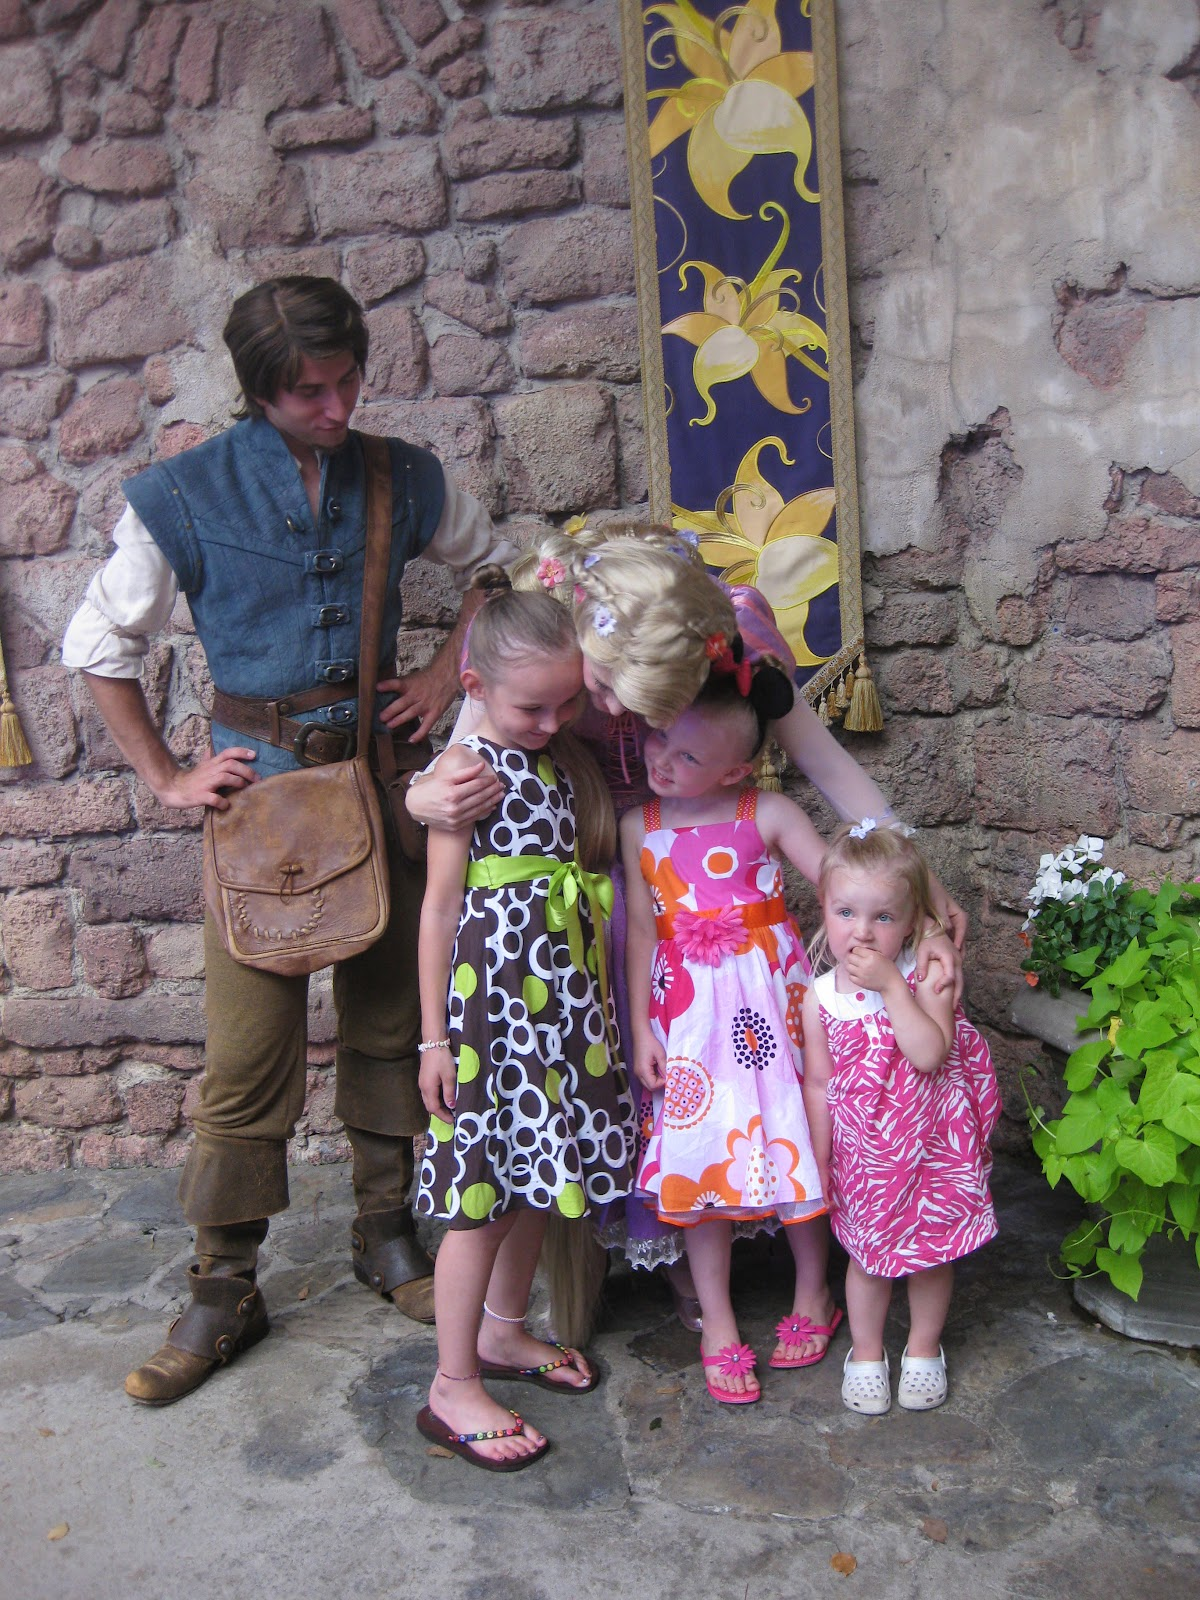 Flynn Rider Disney World 2013 At the walt disney worldFlynn Rider Disney World 2013